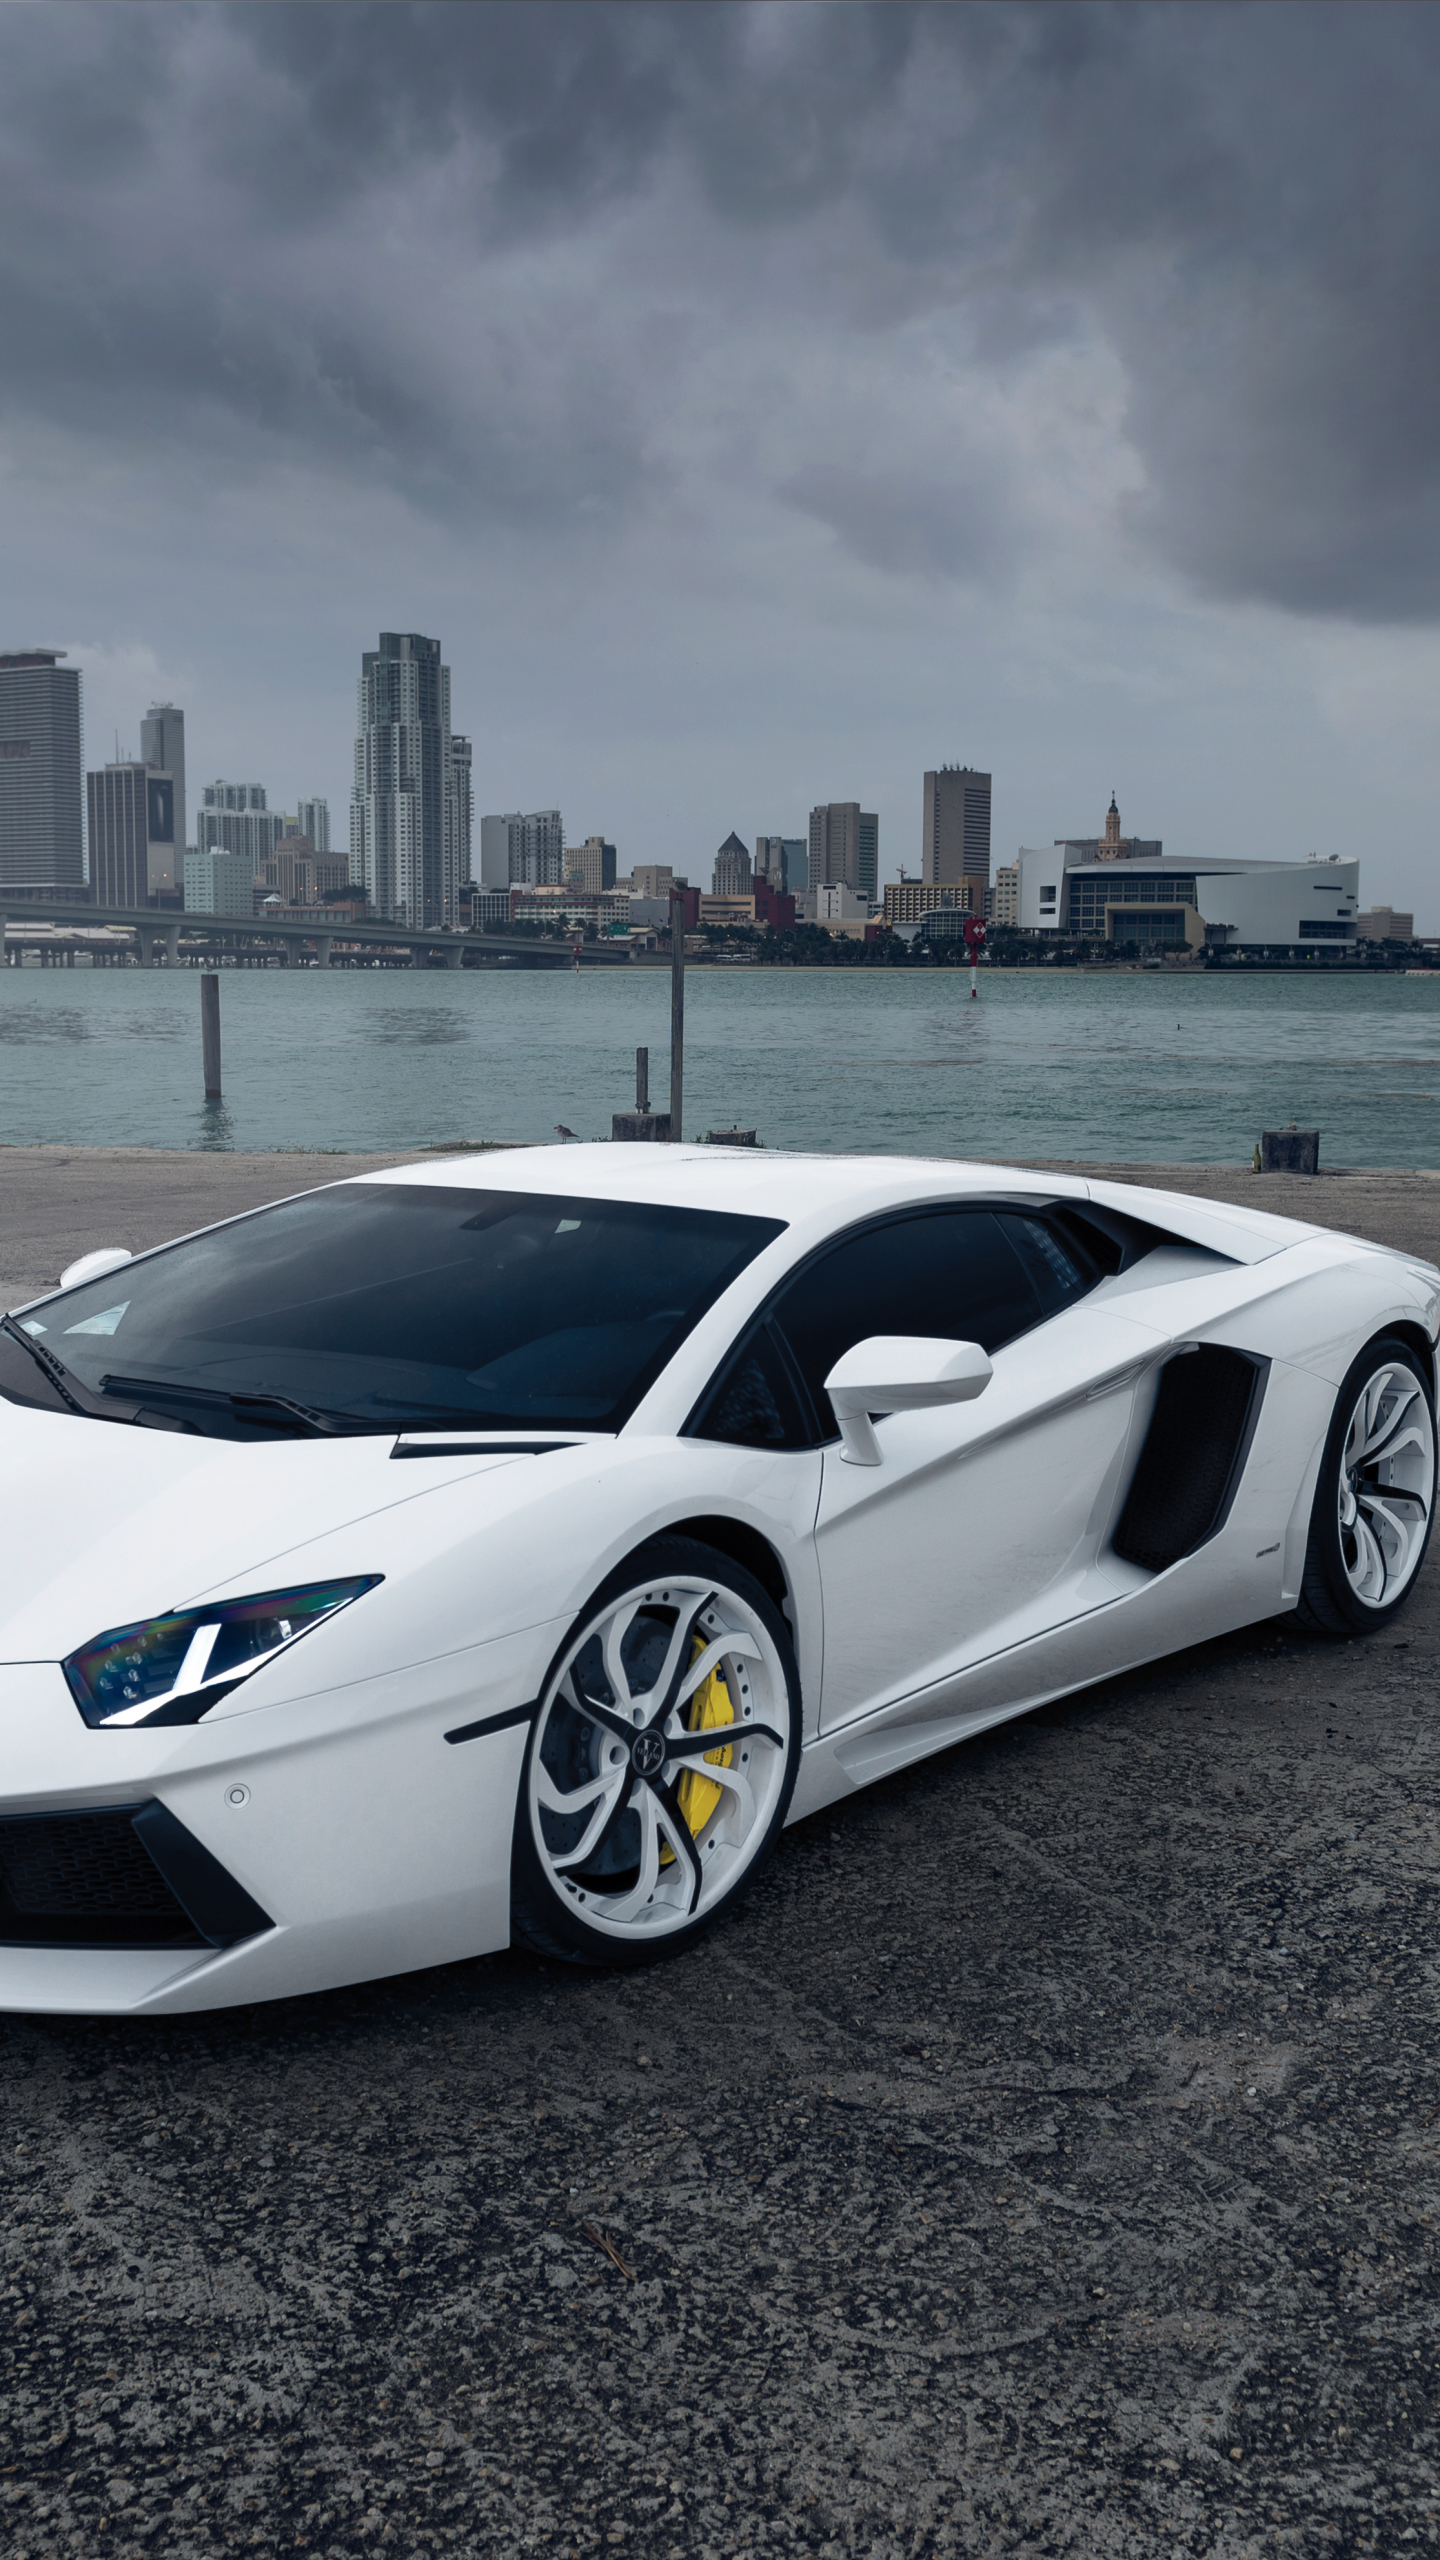 vehicles/lamborghini aventador (1440x2560) wallpaper id: 474826